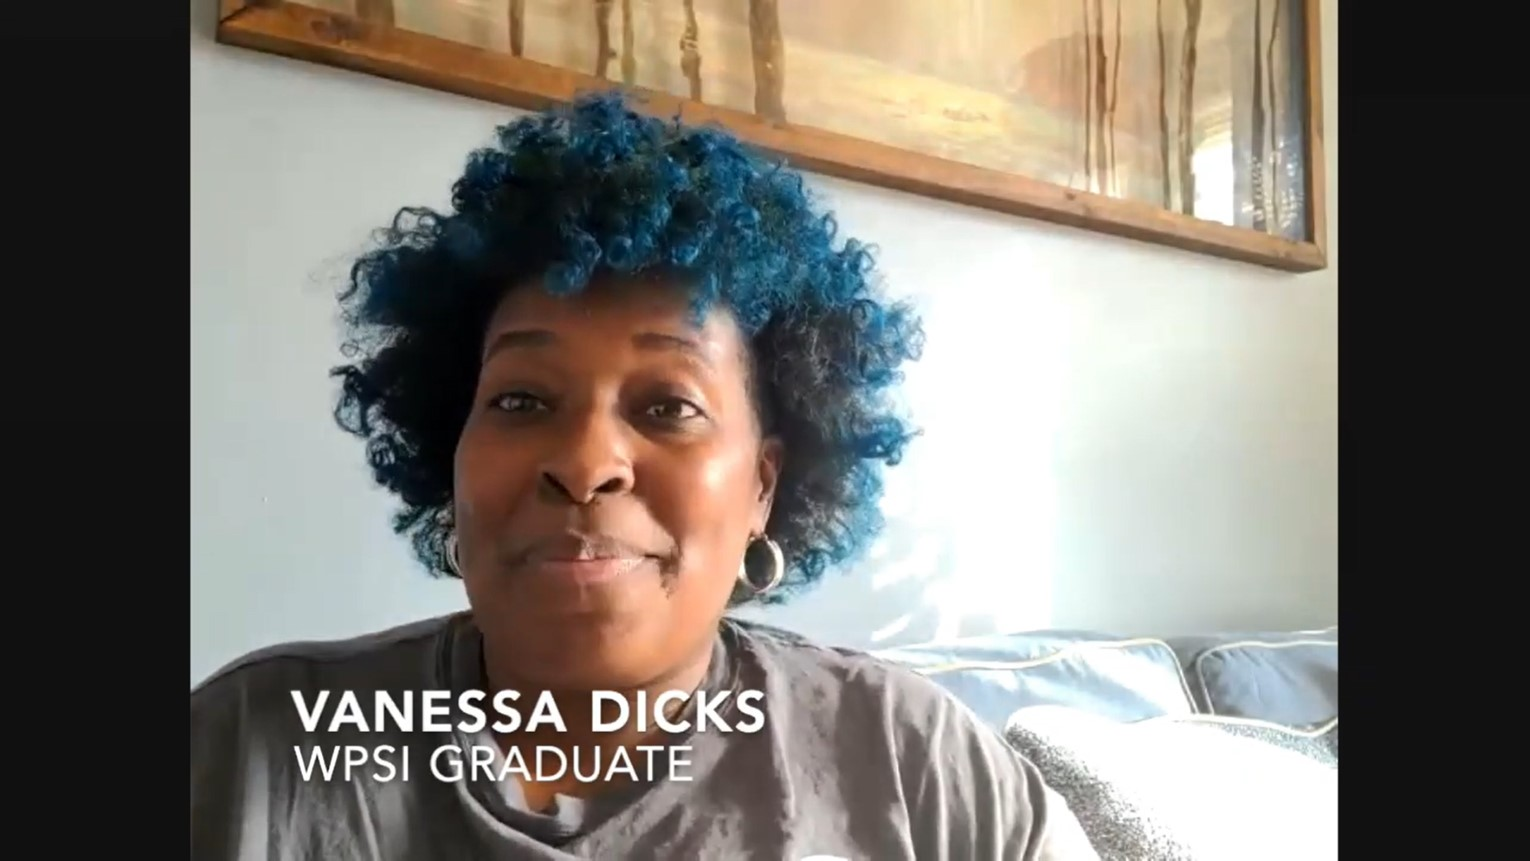 The West Philadelphia Skills Initiative (WPSI) | Graduate Vanessa Dicks